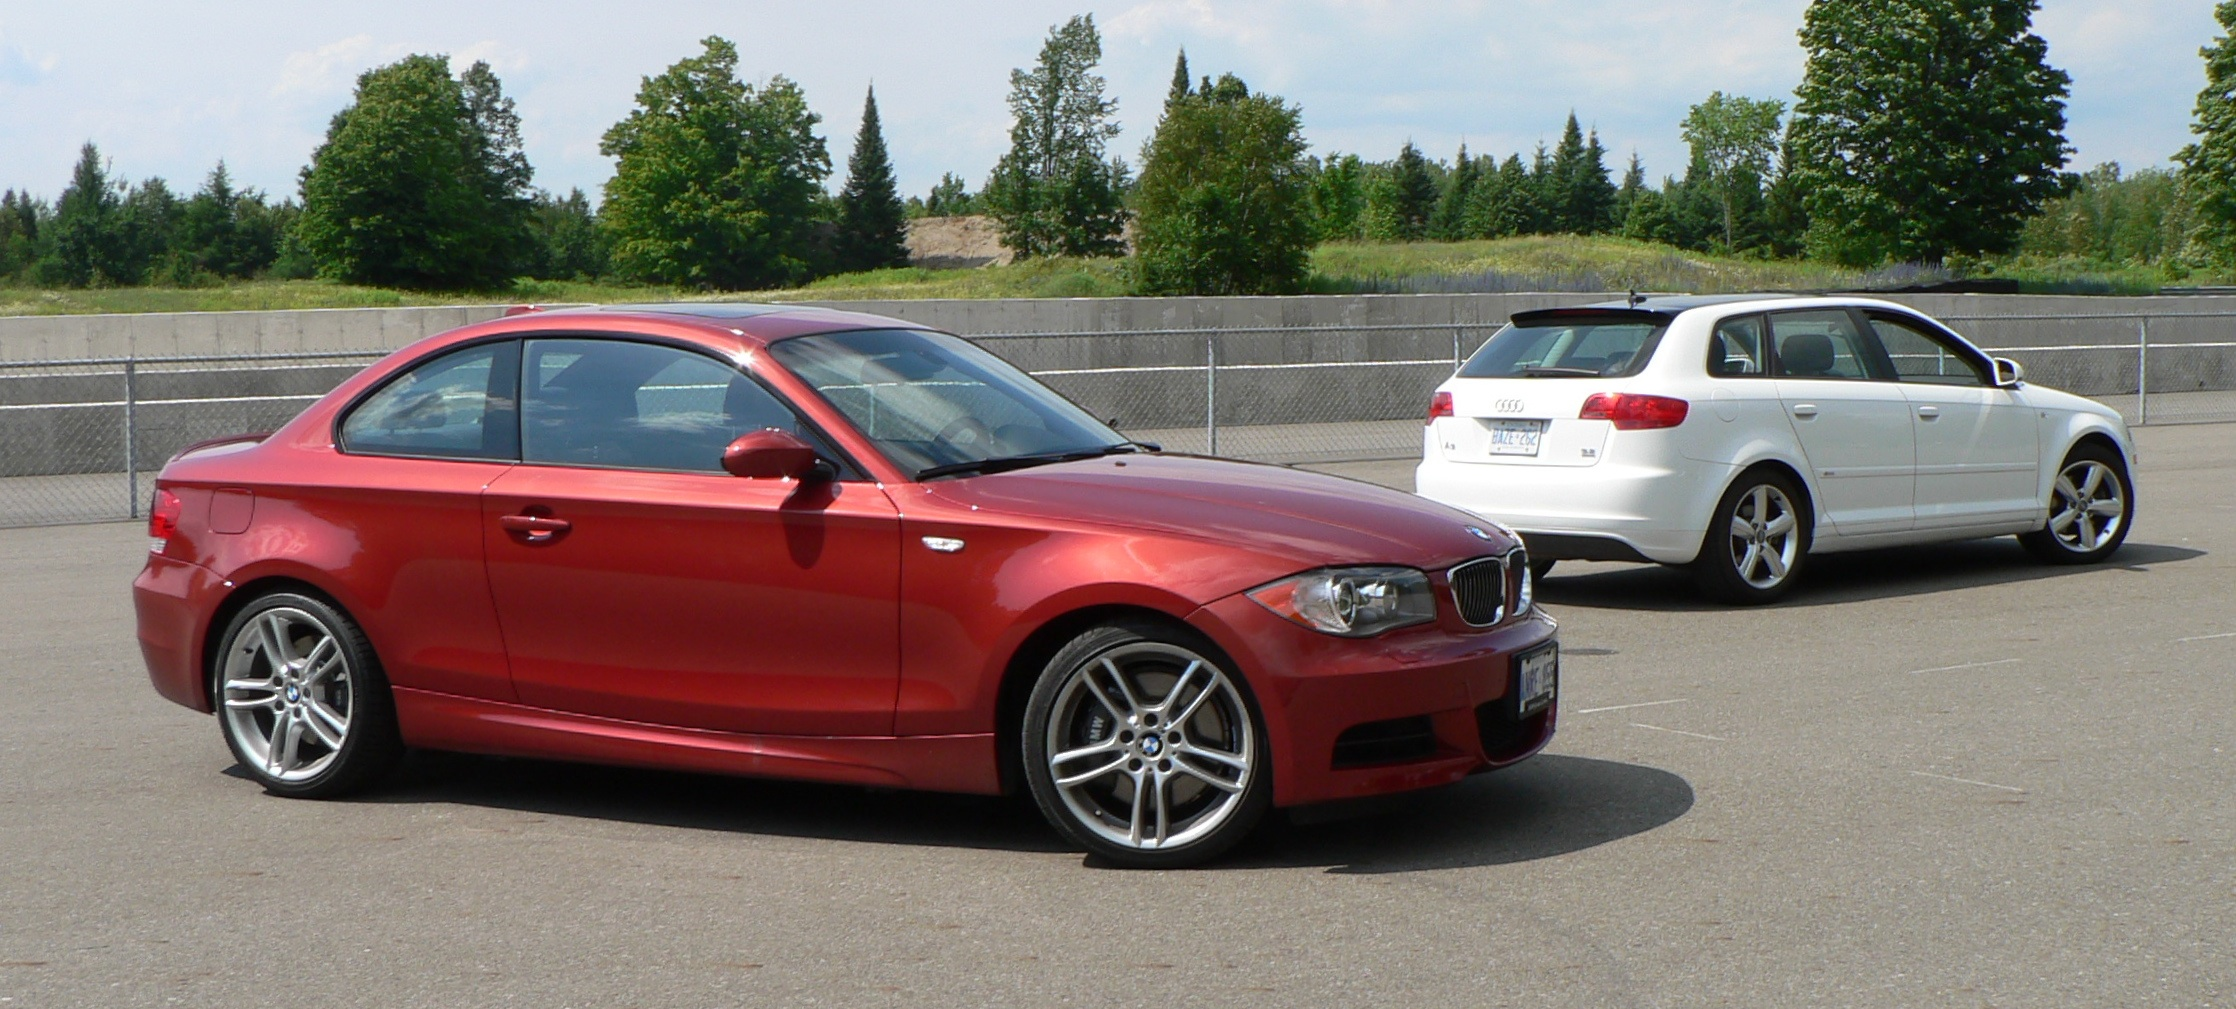 comparo audi a3 3 2 quattro versus bmw 135i john leblanc 39 s straight six. Black Bedroom Furniture Sets. Home Design Ideas